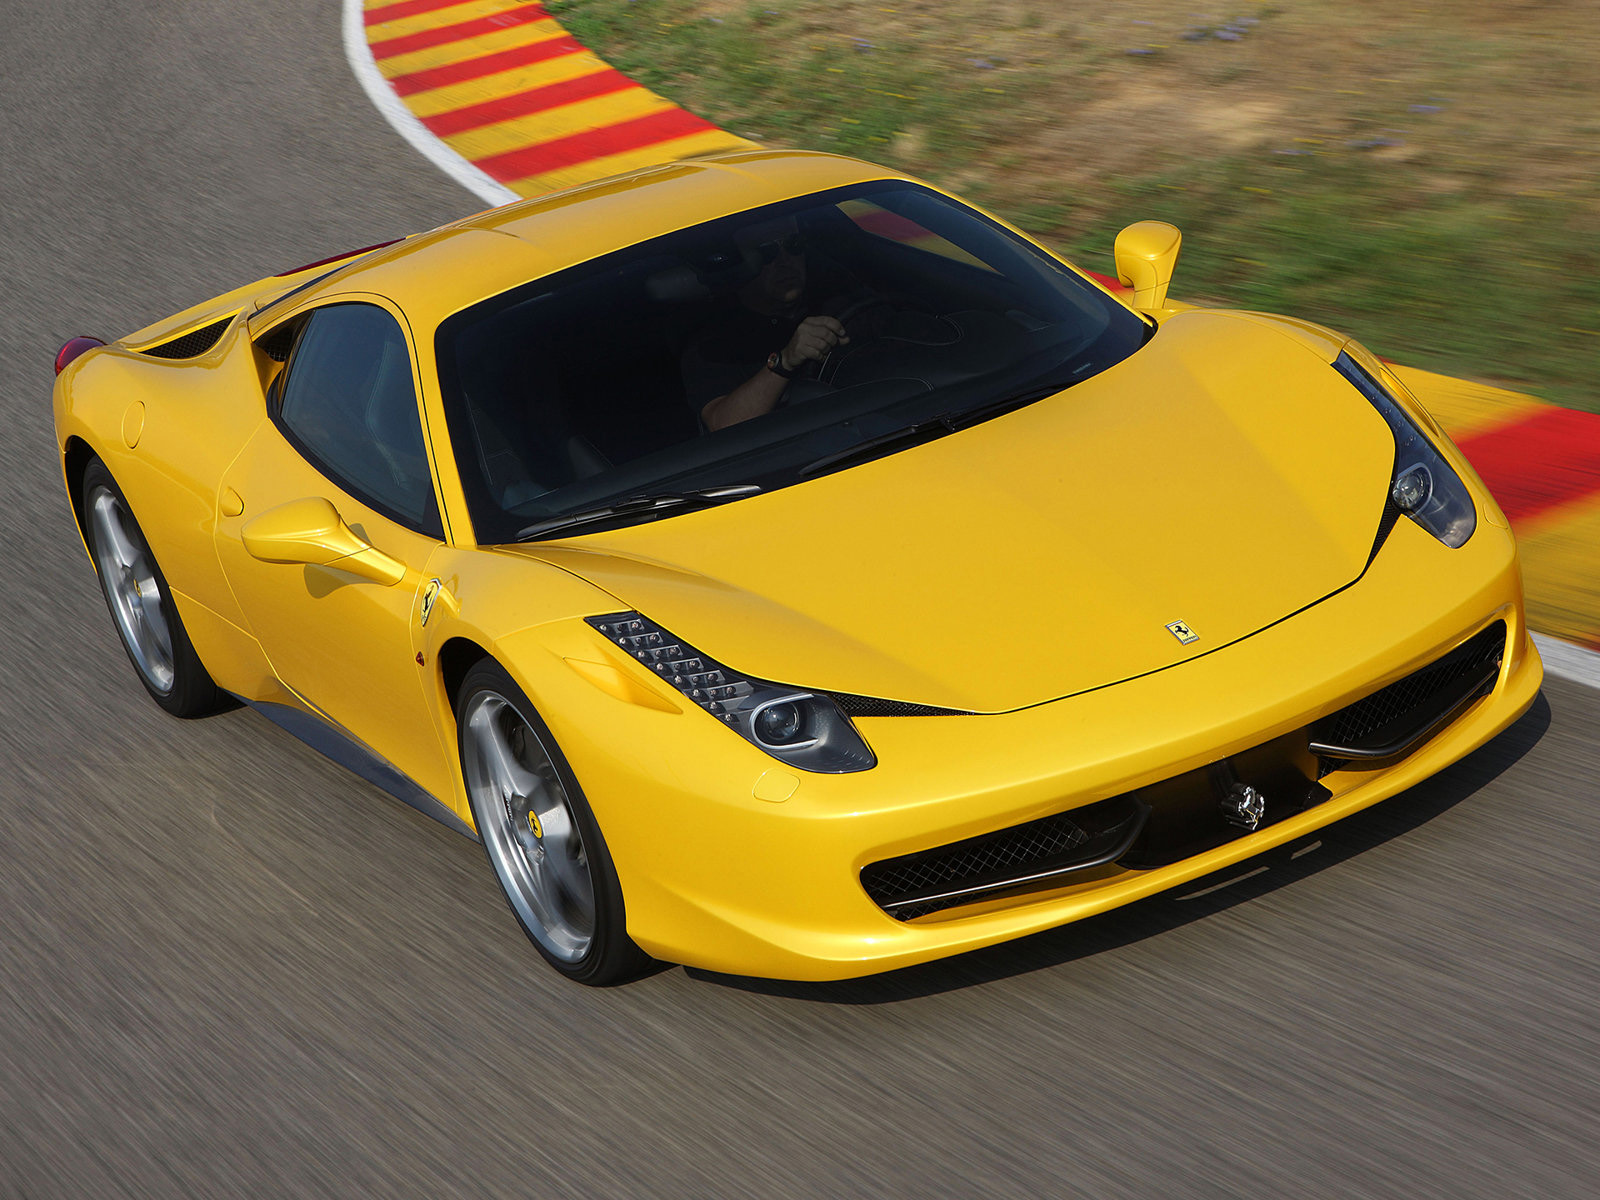 Ferrari Ferrari 458 Italia Ferrari 458 Italia photo car wallpapers 1600x1200